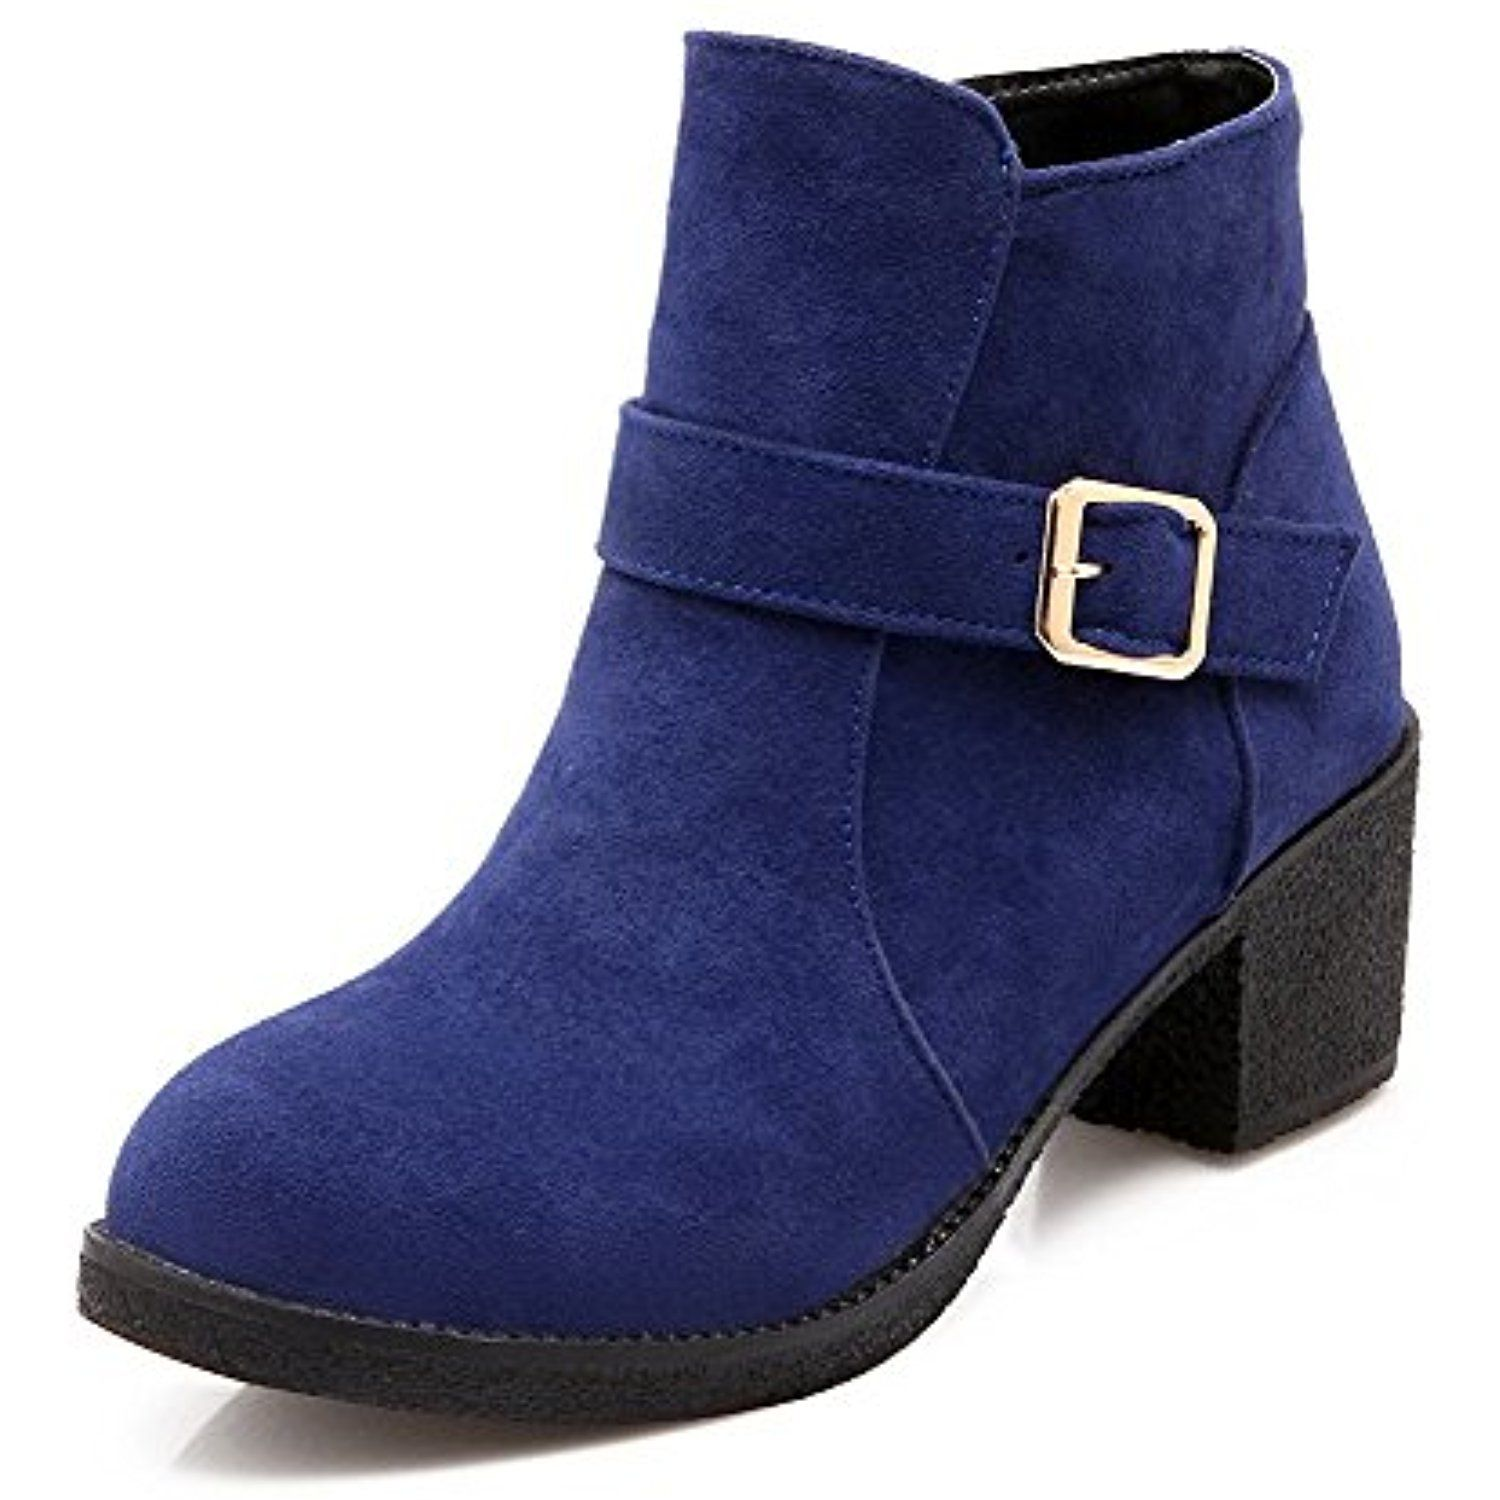 Women's Round Closed Toe Low-top Low Heels Solid Flock Boots